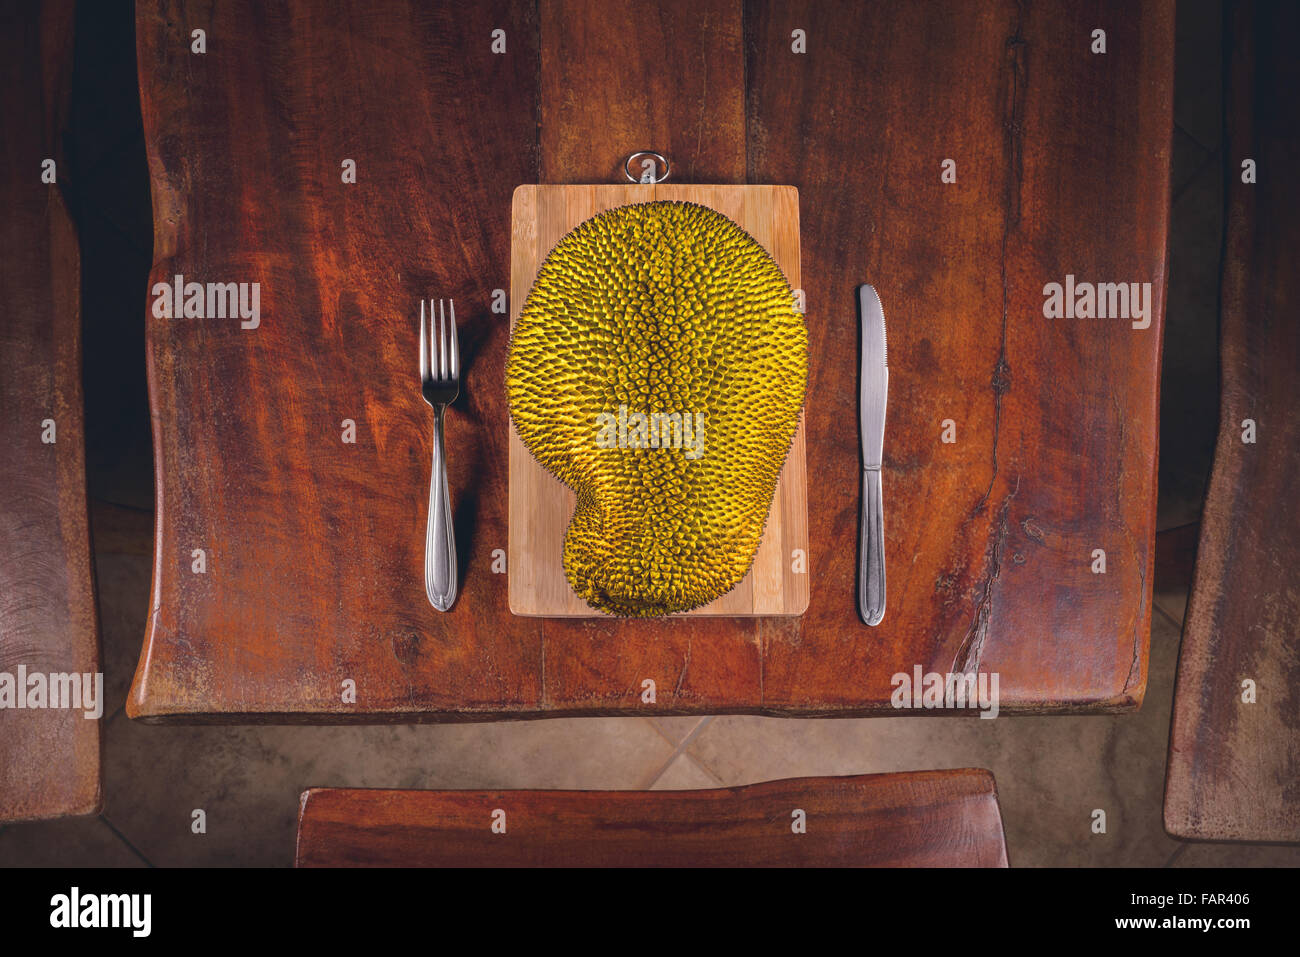 Fruit jackfruit on the table and cutlery around it. - Stock Image